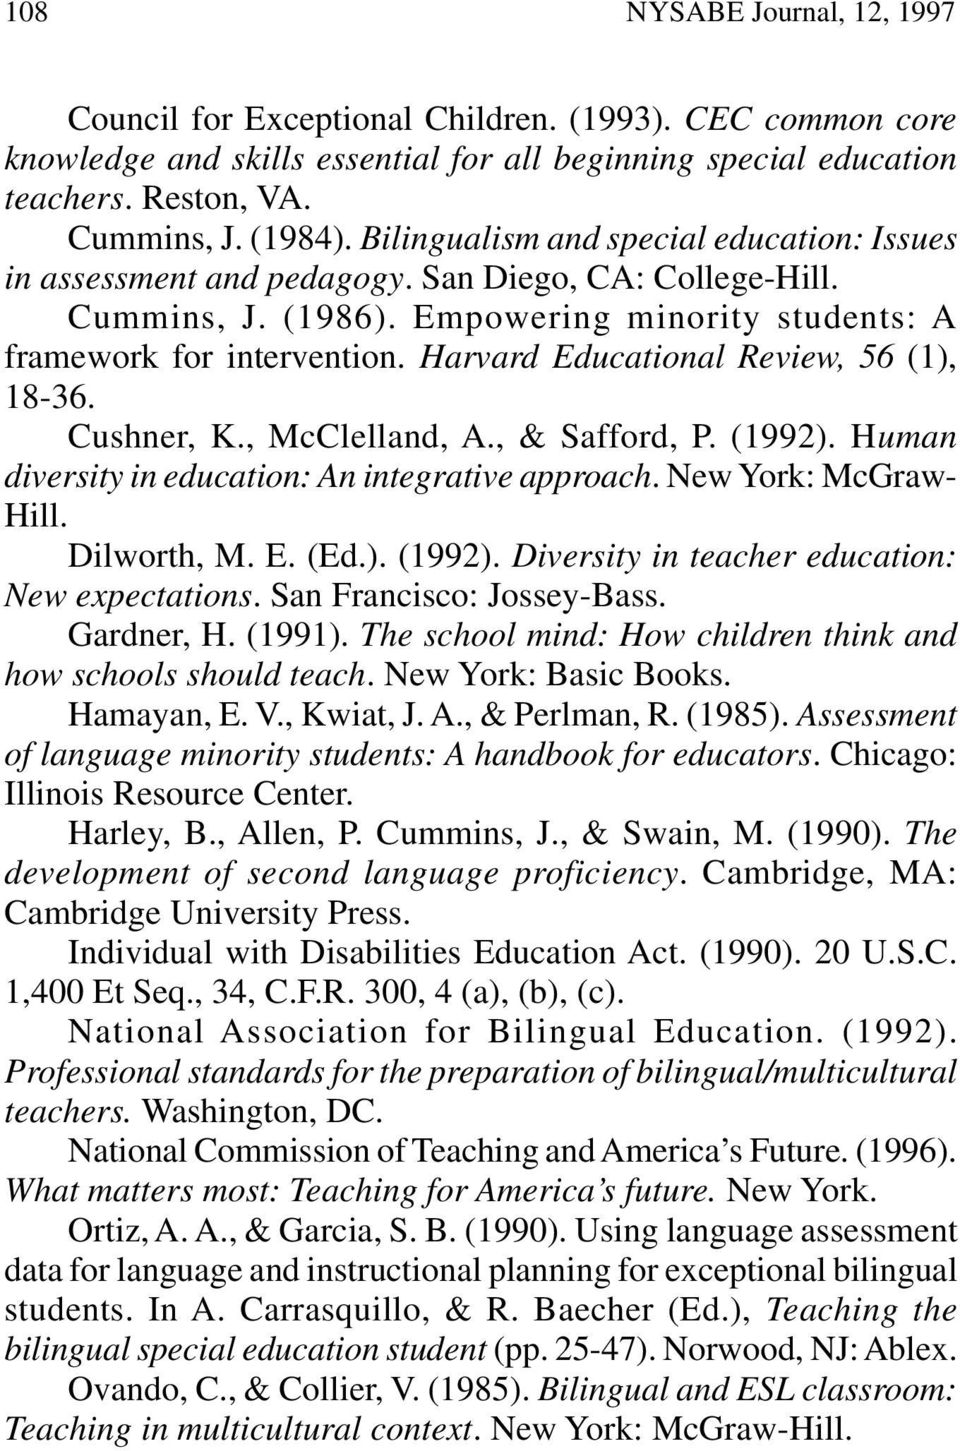 Harvard Educational Review, 56 (1), 18-36. Cushner, K., McClelland, A., & Safford, P. (1992). Human diversity in education: An integrative approach. New York: McGraw- Hill. Dilworth, M. E. (Ed.). (1992). Diversity in teacher education: New expectations.